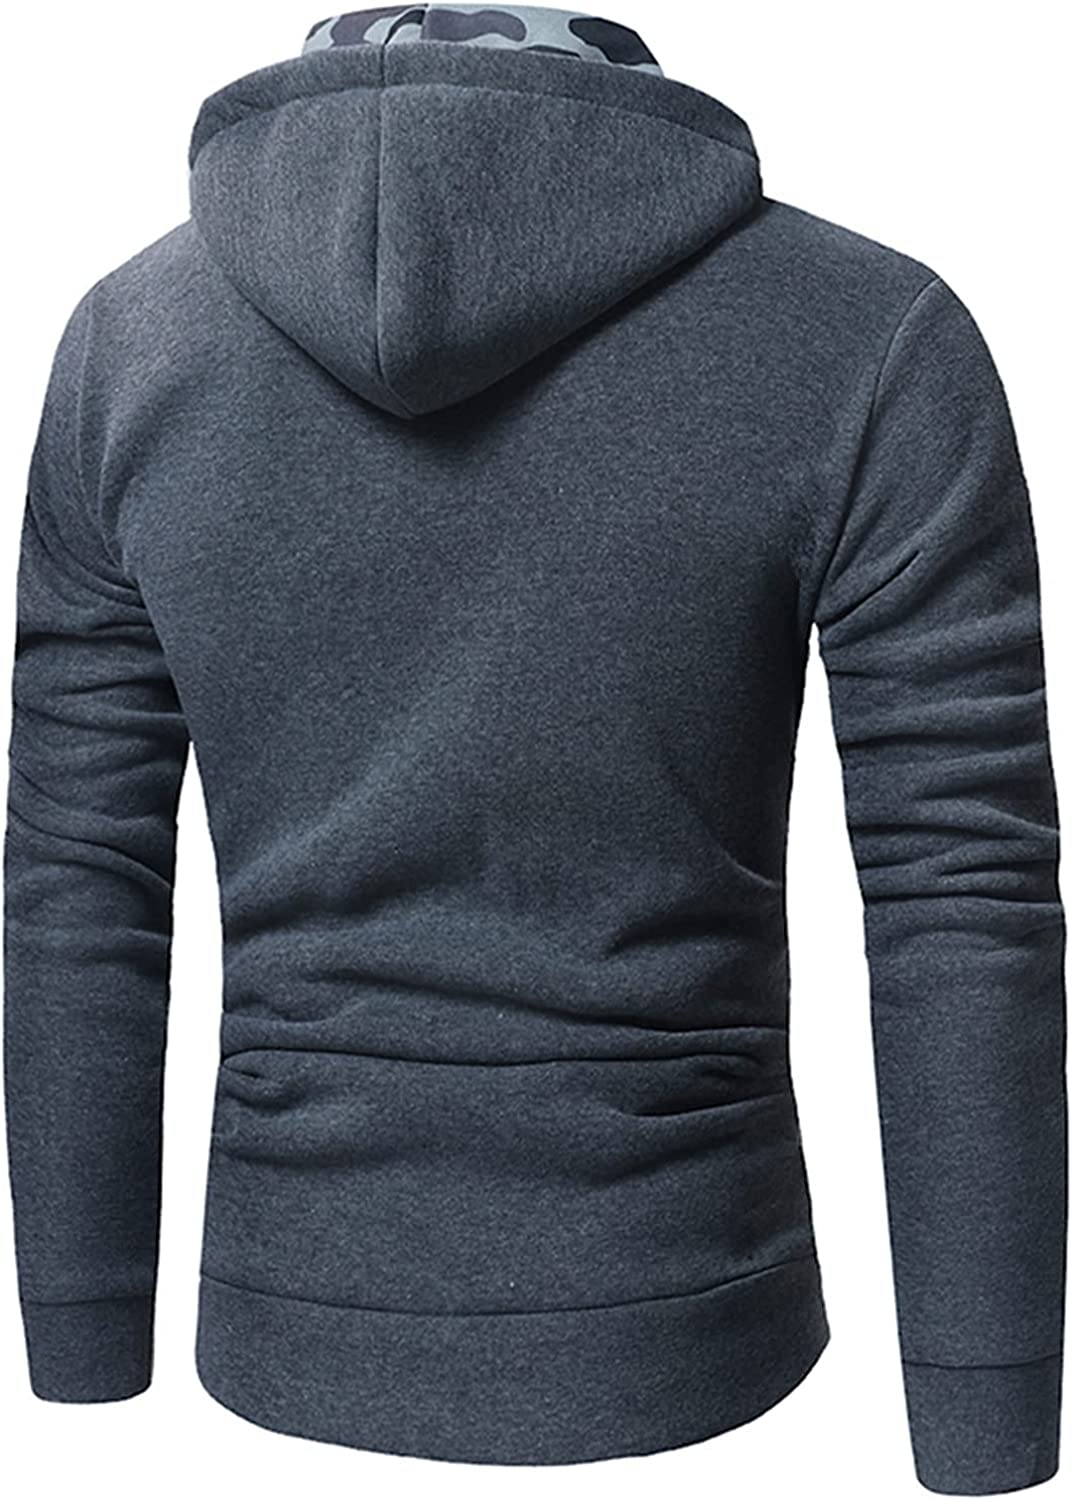 XXBR Camo Stitching Hoodies for Mens, Button Cowl Neck Pullover Loose Casual Turtleneck Hooded Sweatshirts with Pocket